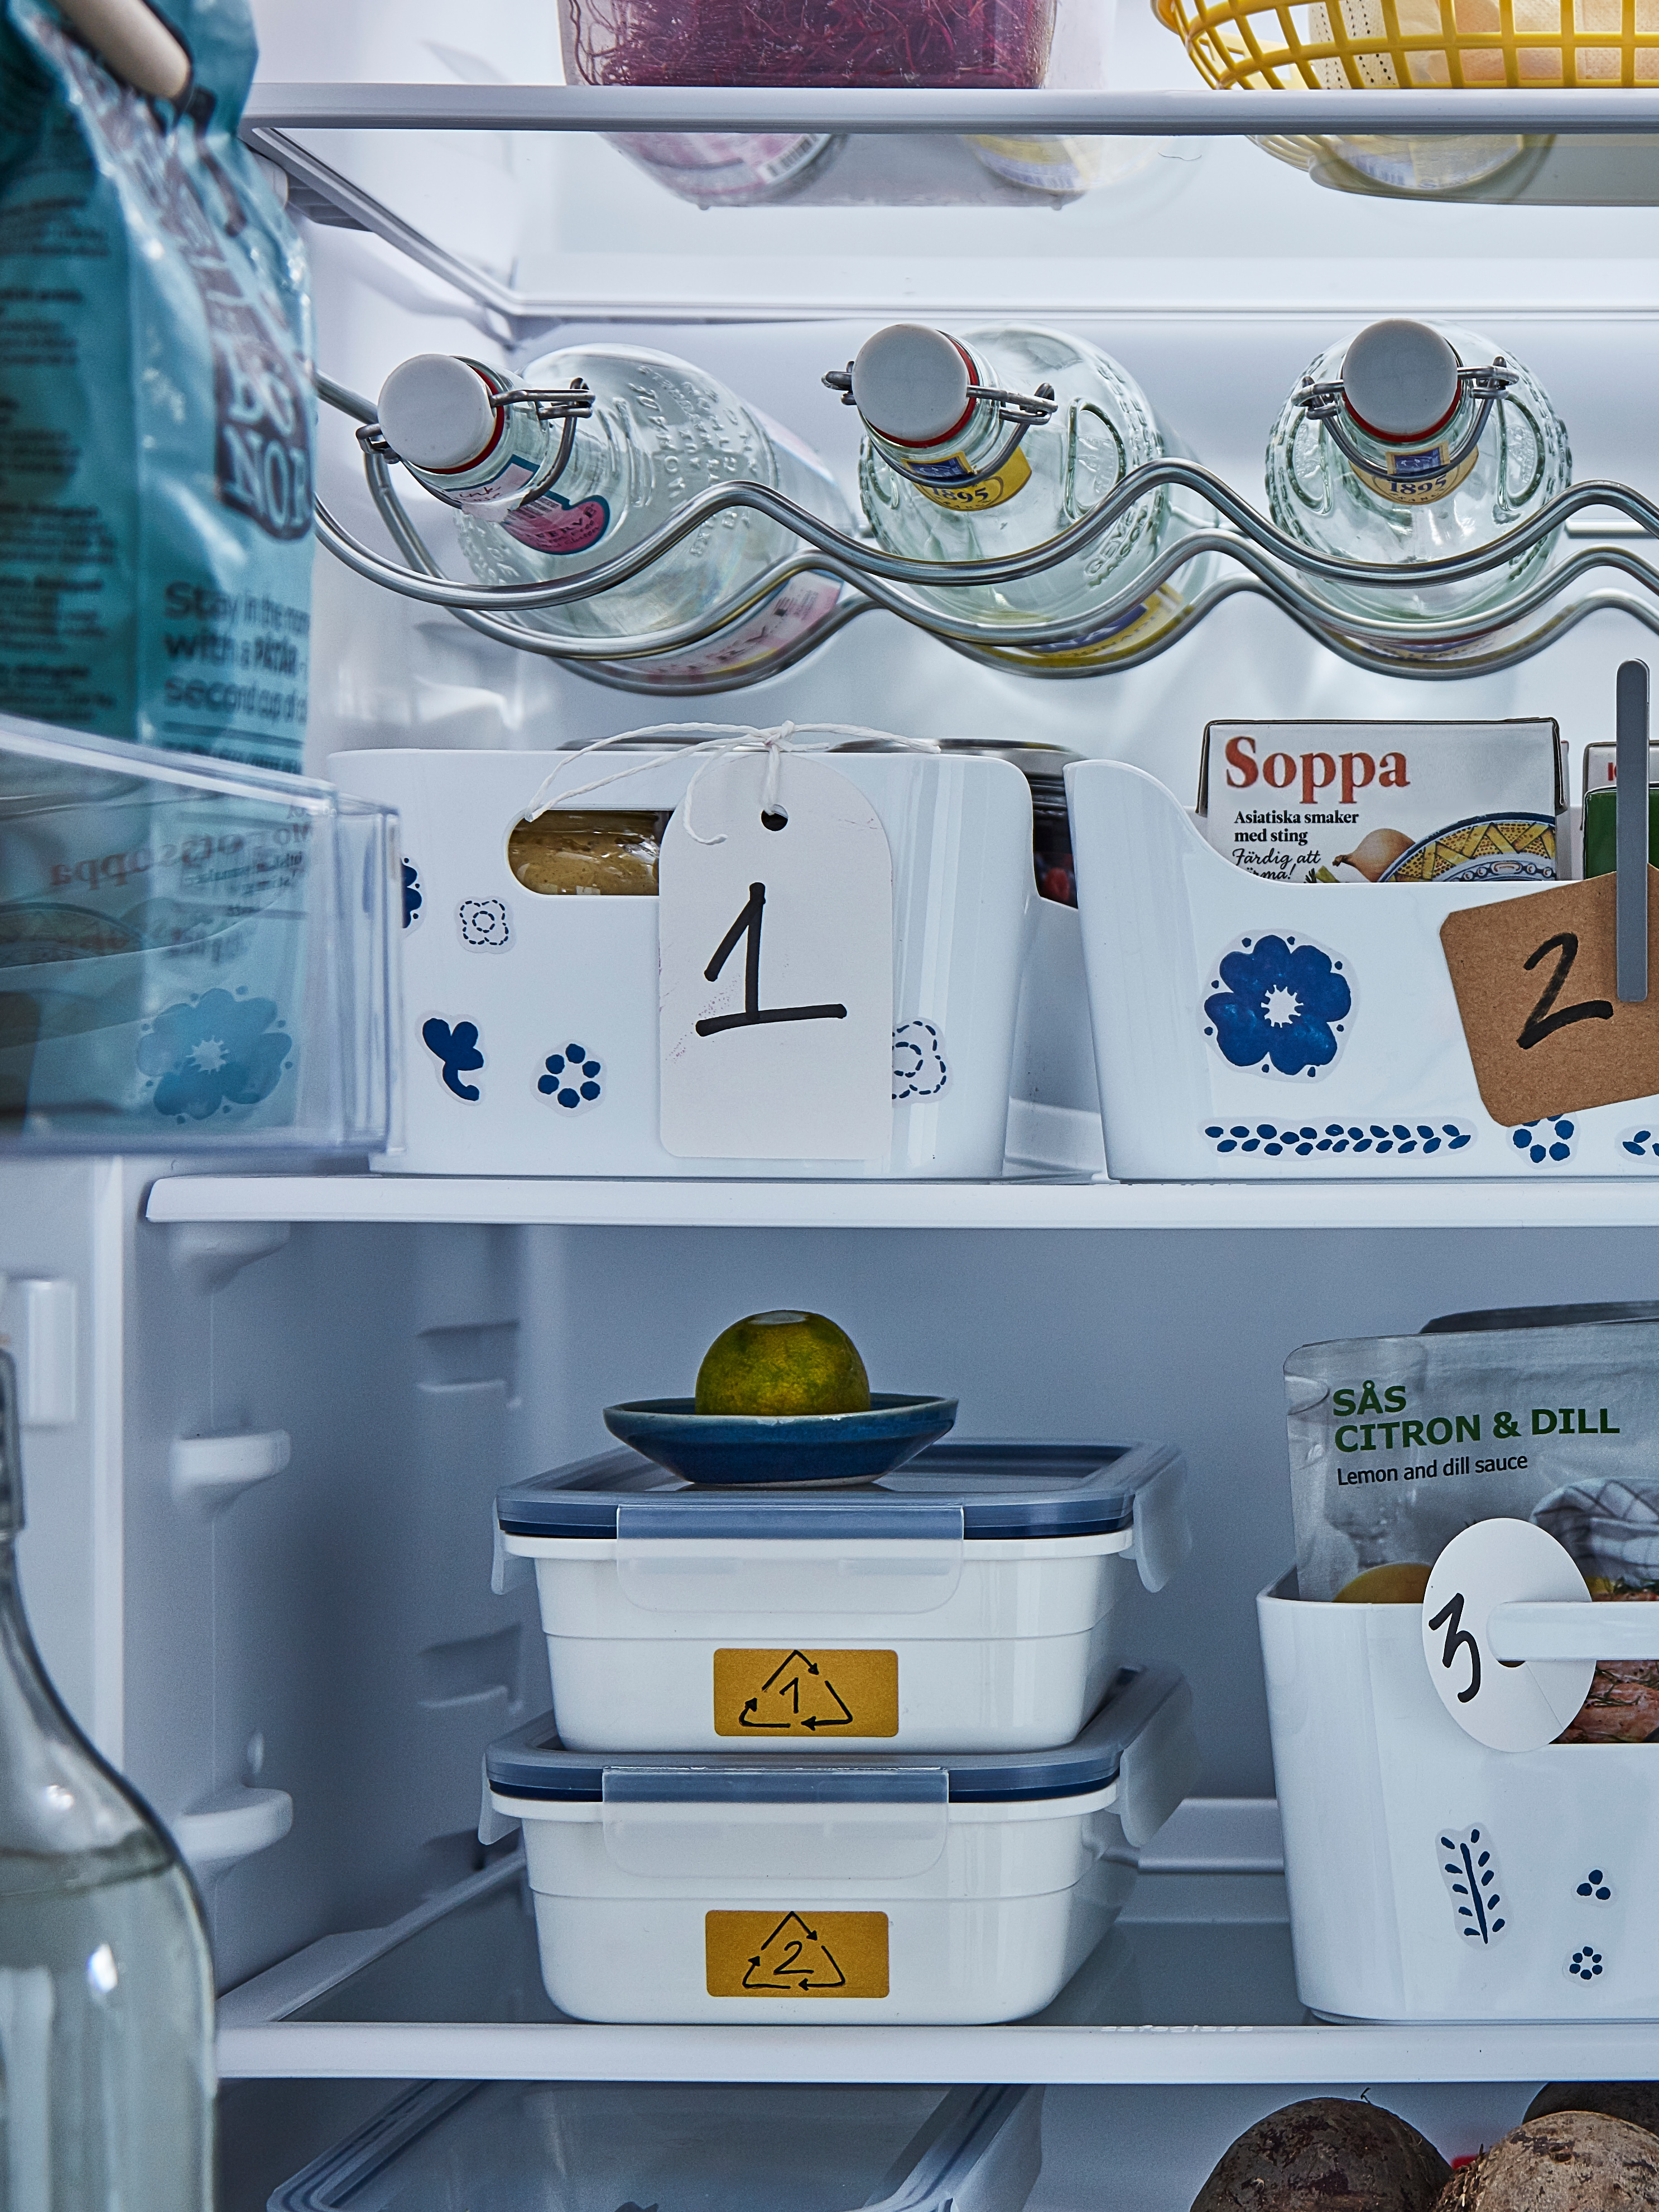 White VARIERA boxes in a refrigerator filled with groceries and lunch boxes, stacked on each other.